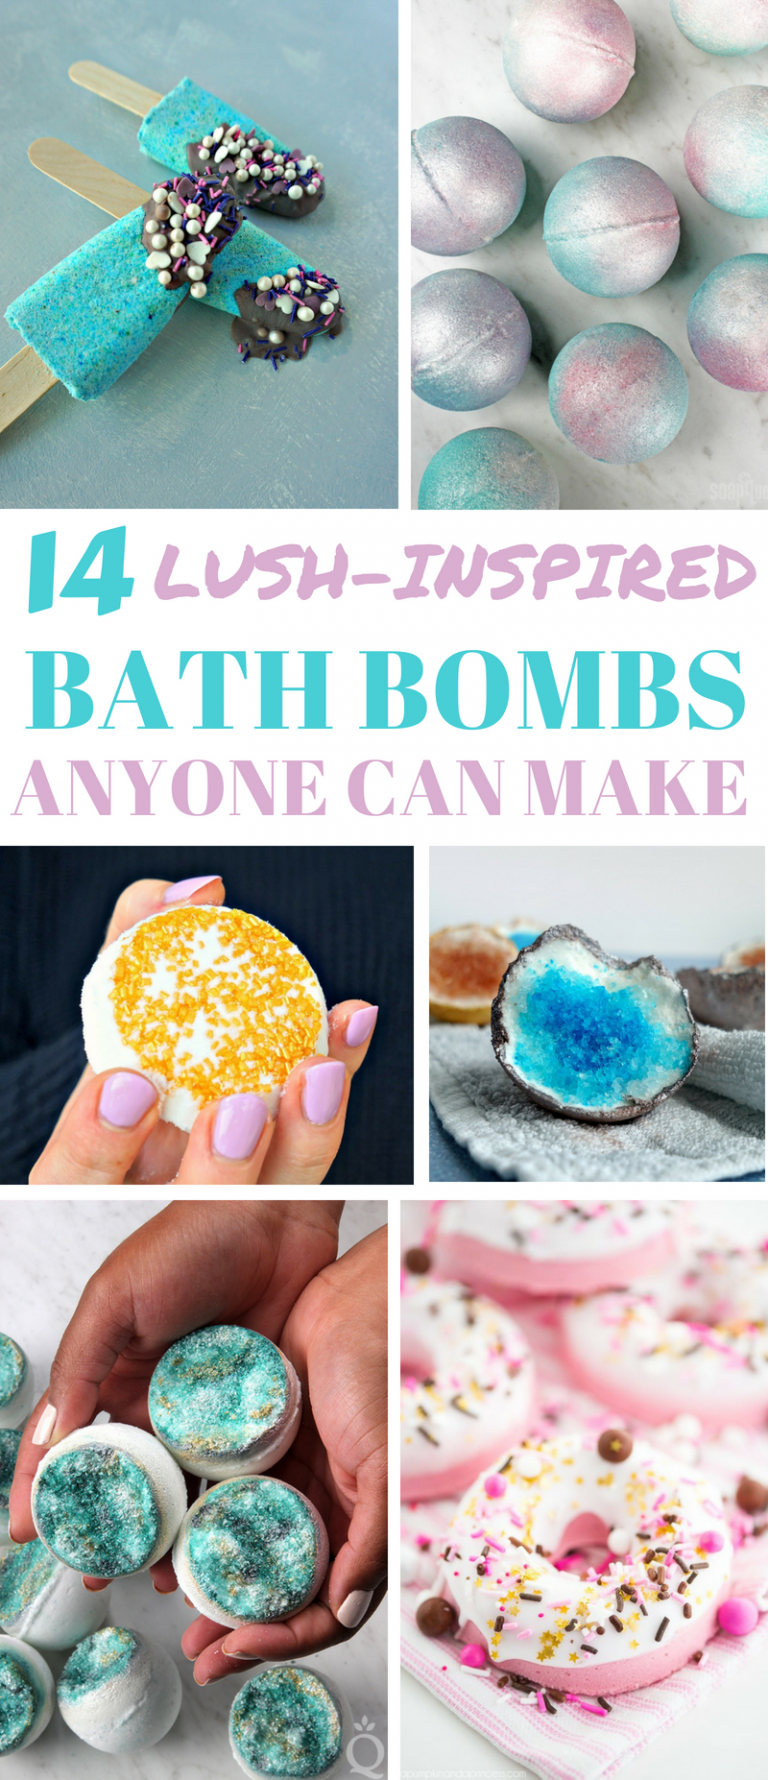 14 Best Lush Inspired DIY Badebombe Rezepte die jeder machen kann  The Thrifty Kiwi#fashionhijab #fashionjewelry #weddingparty #weddingplanning #weddingmoments #weddingphoto #weddingplanners #naillife #nailvarnish #nailsdone #weddingjewelry #designerjewelry #nailed